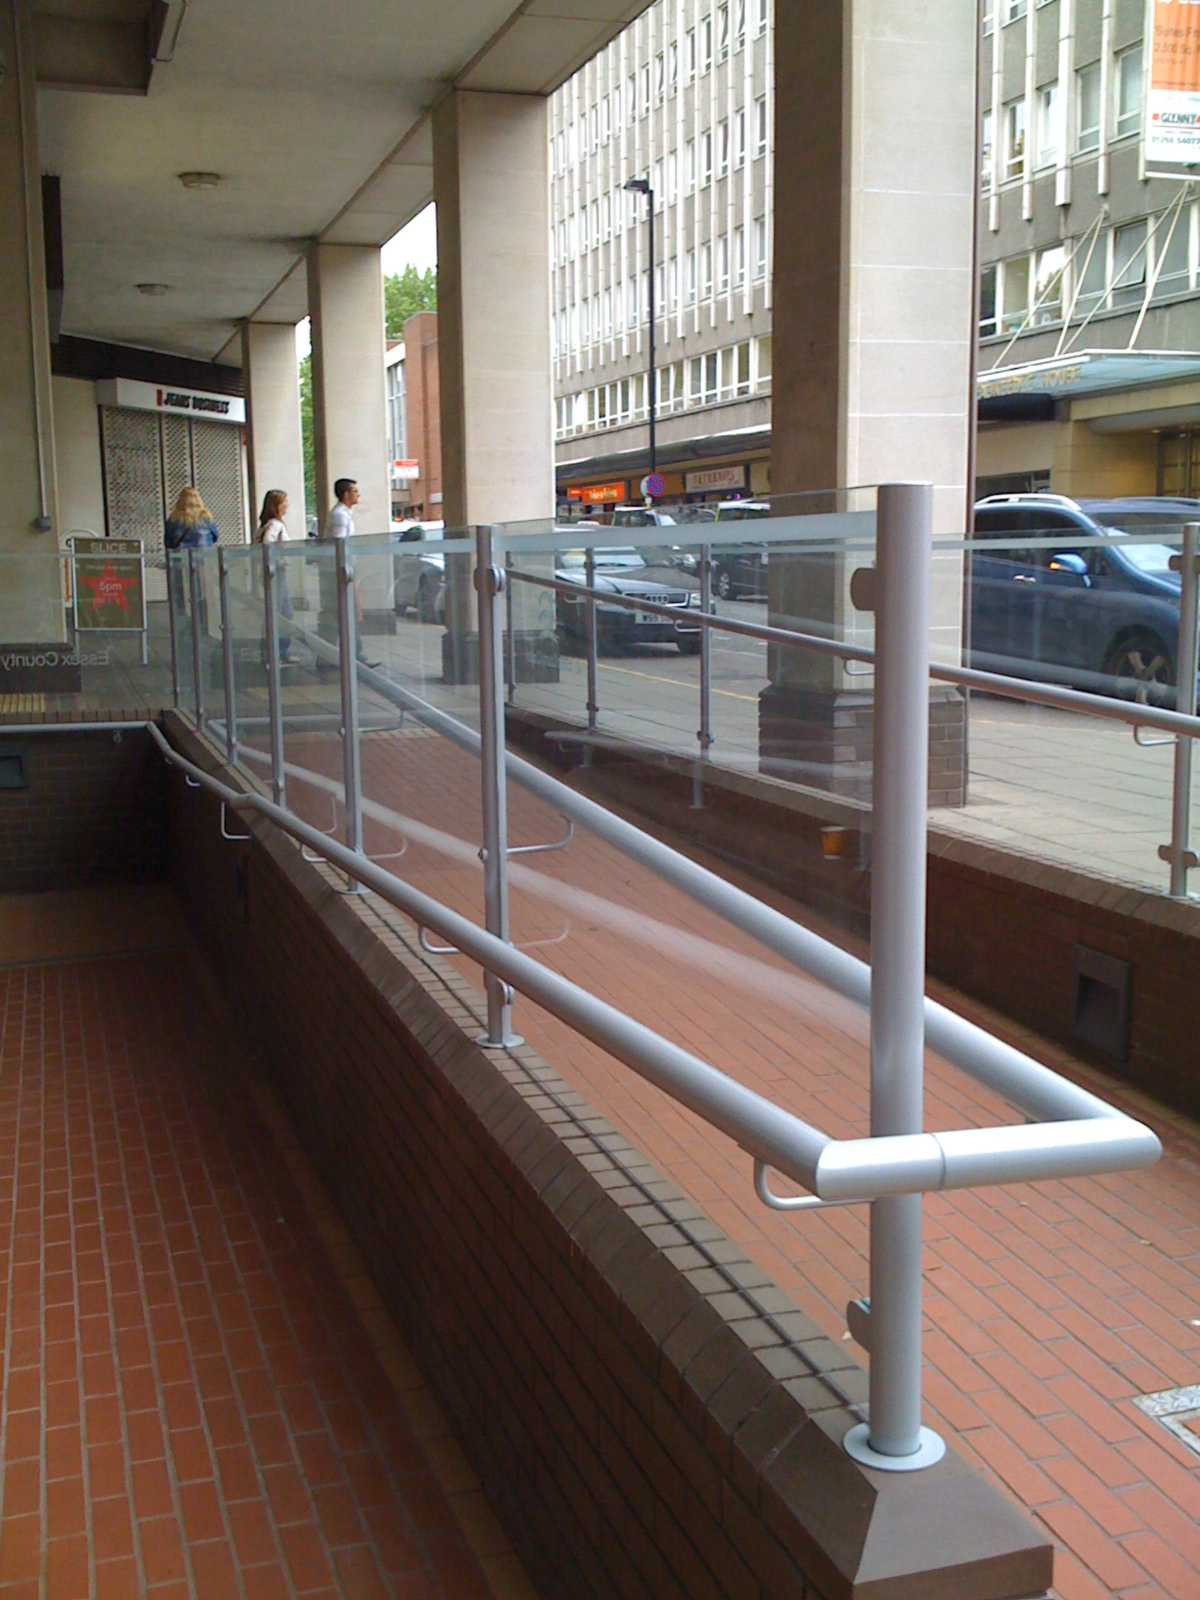 Aluminium Handrail on ramp